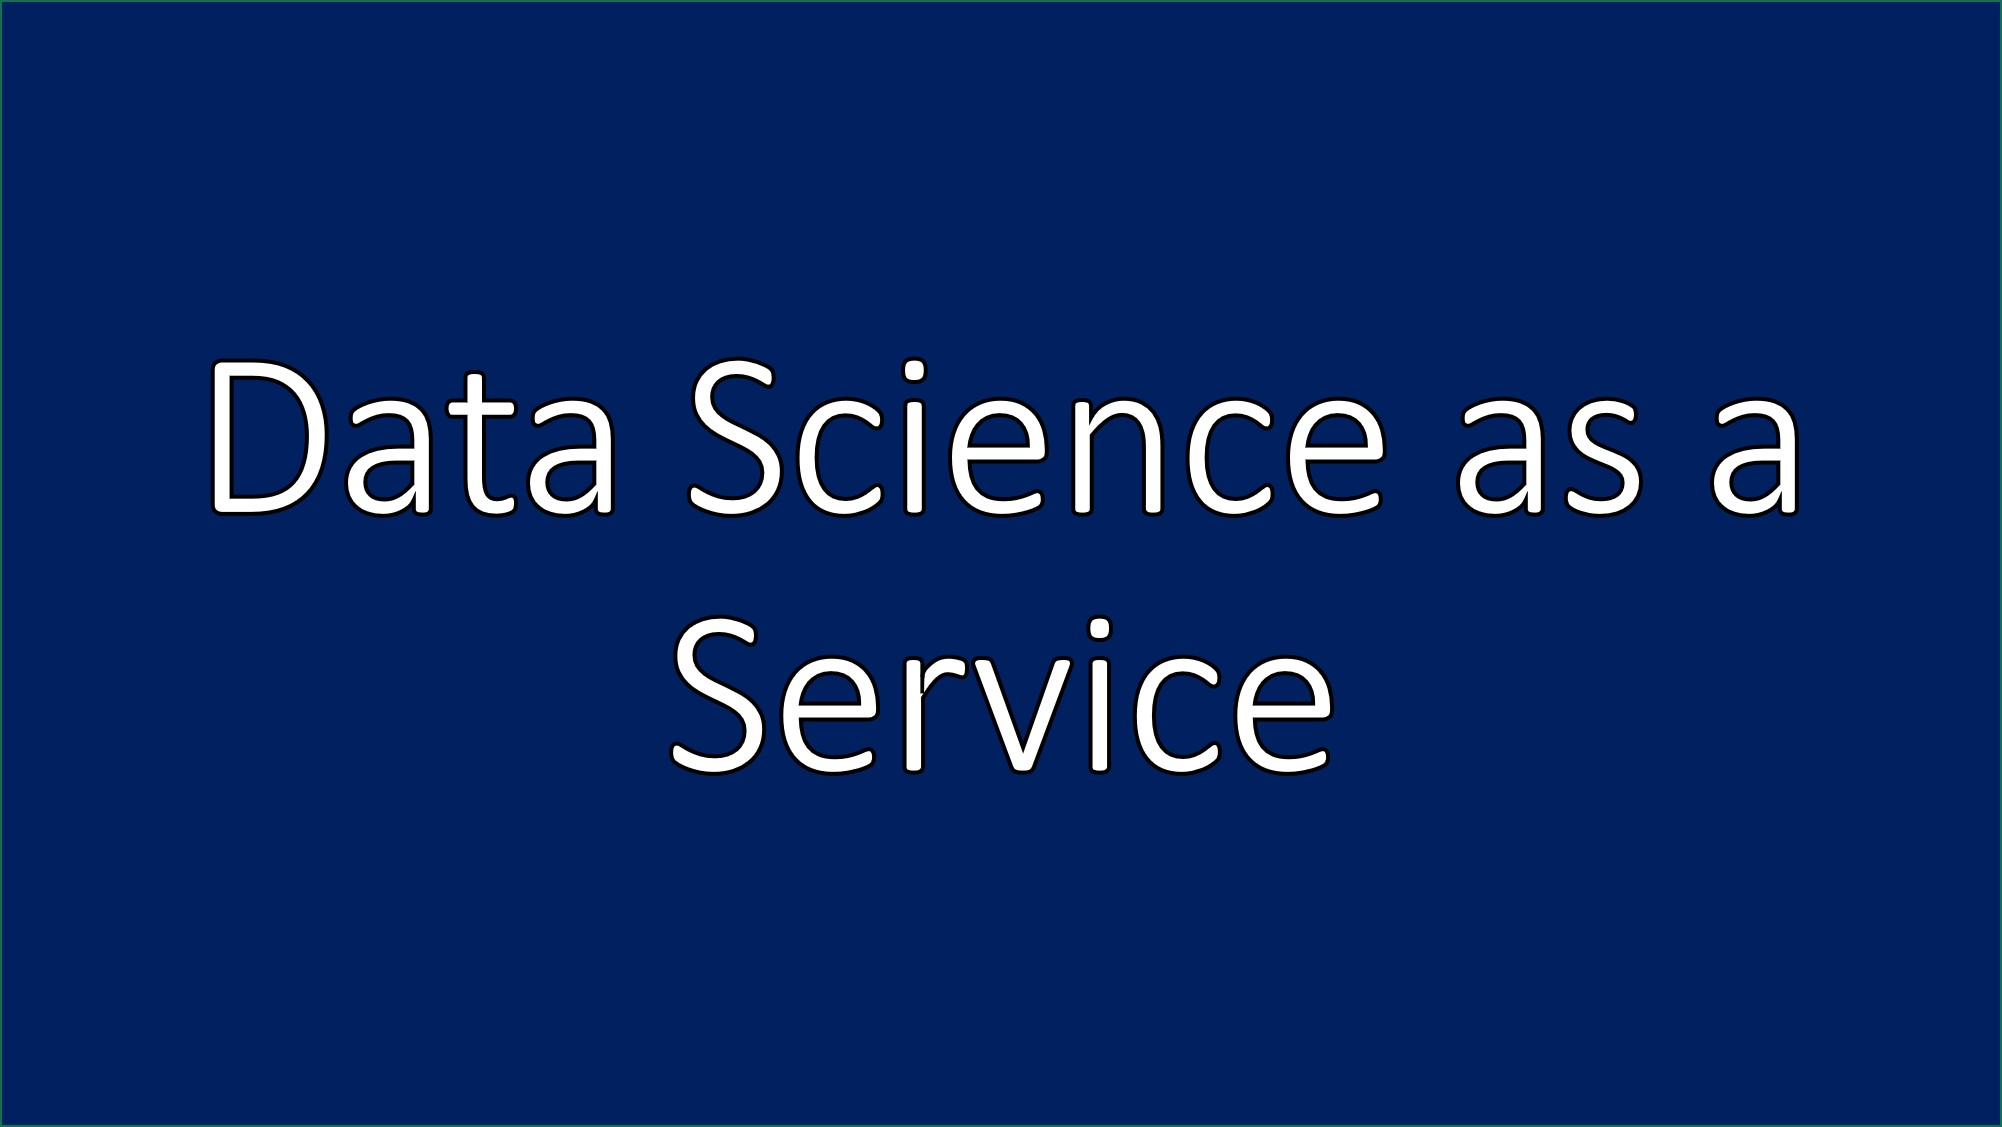 Press Release: datazuum launches Data Science as a Service Offering